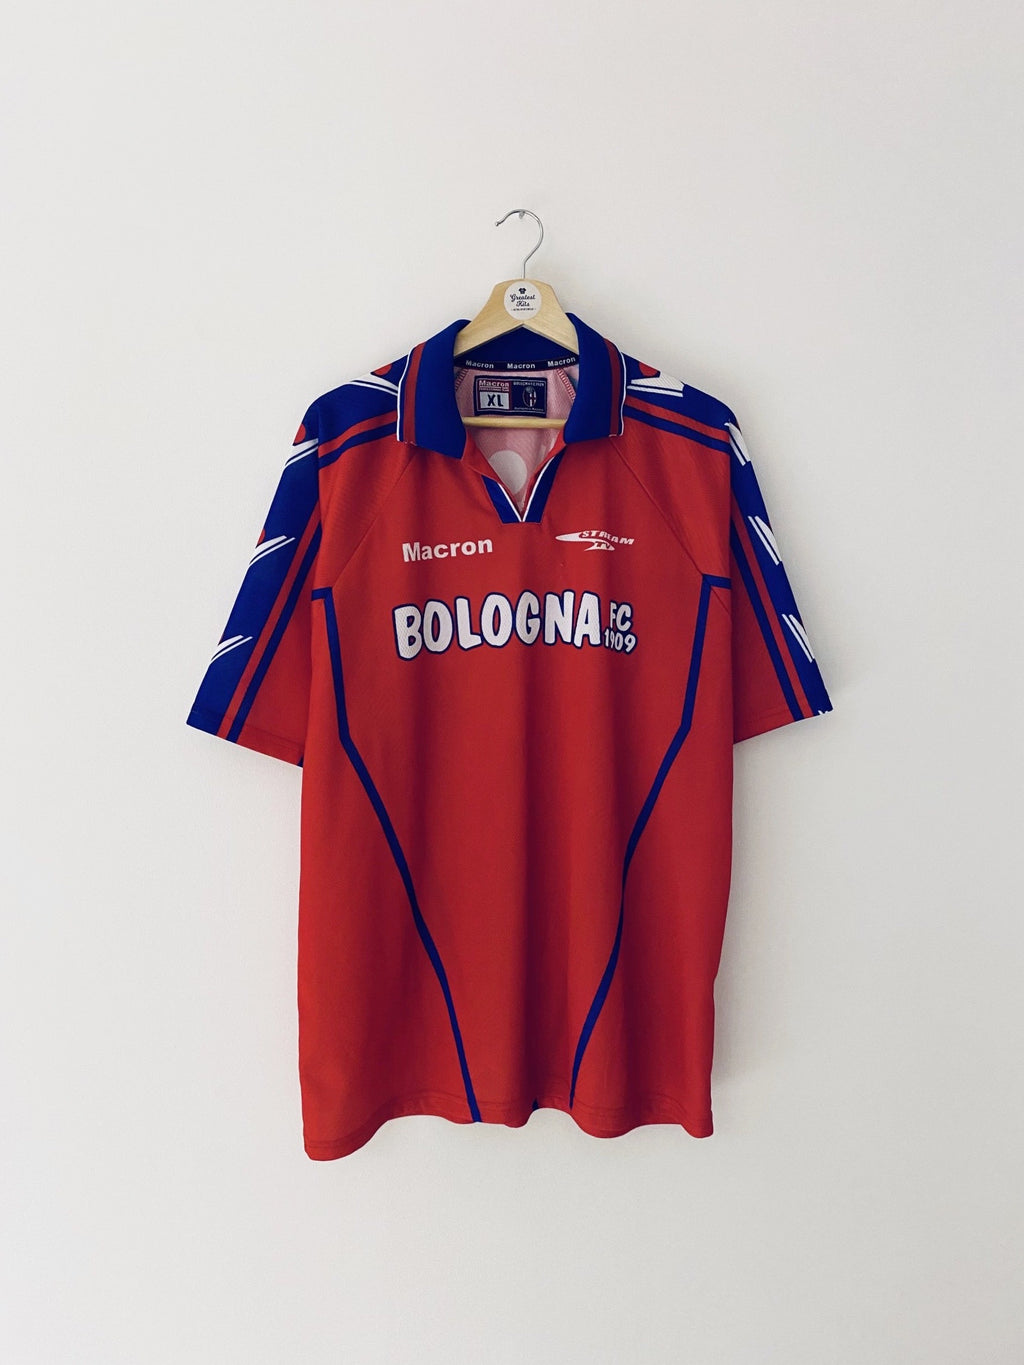 2002/03 Bologna Training Shirt (L) 7.5/10